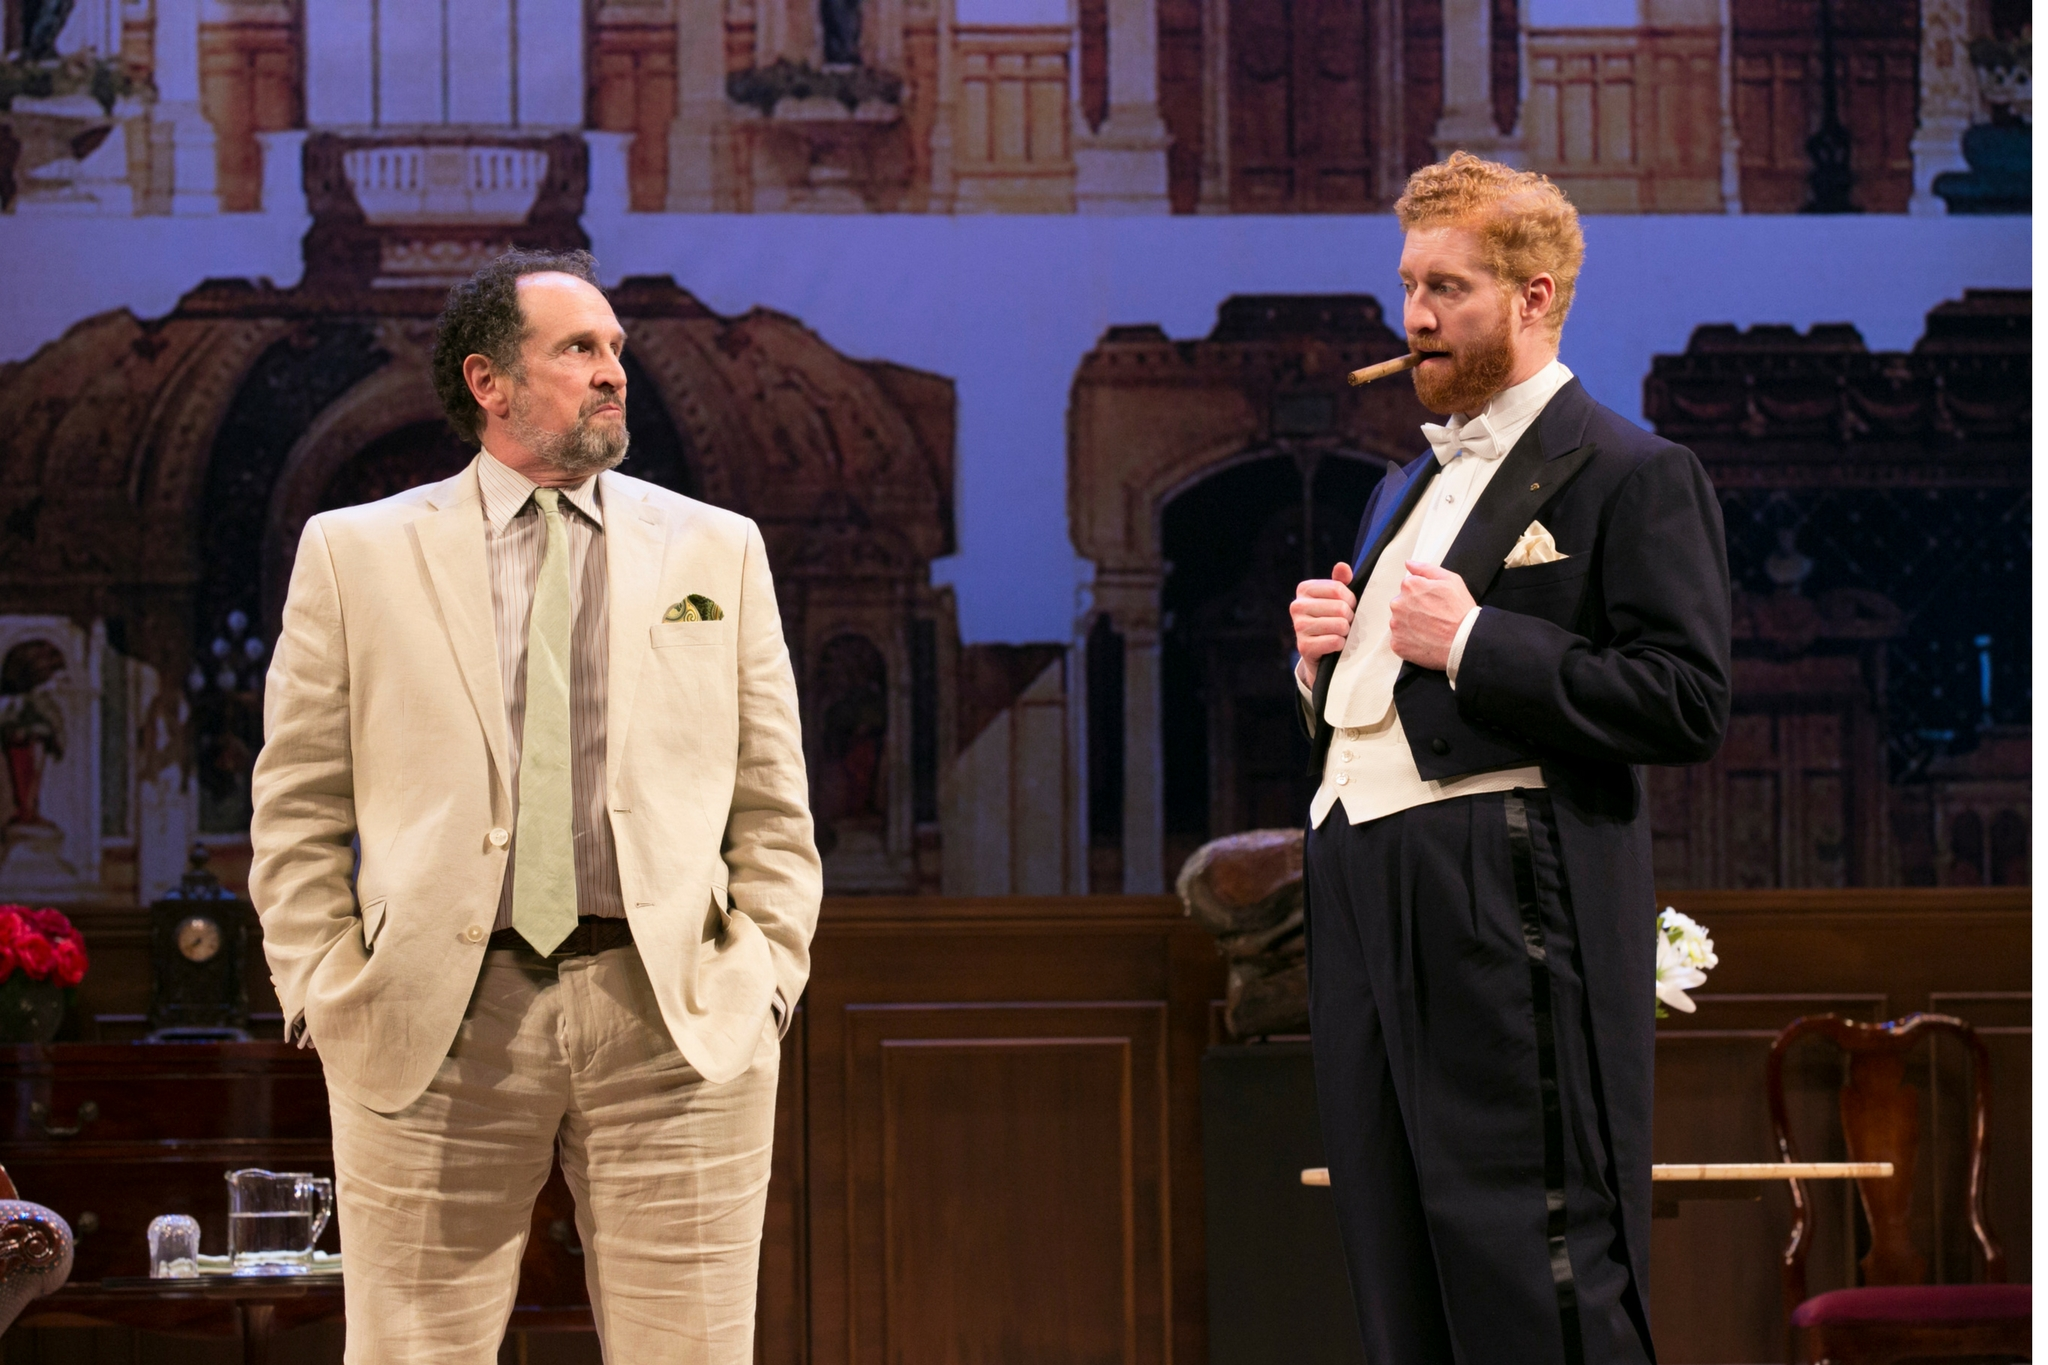 Jeremiah Kissel (Jeffrey Bernstein) and Ed Hoopman (Tobias Viivan Pfeiffer) in Old Money, 2017-Photo by Evgenia Eliseeva